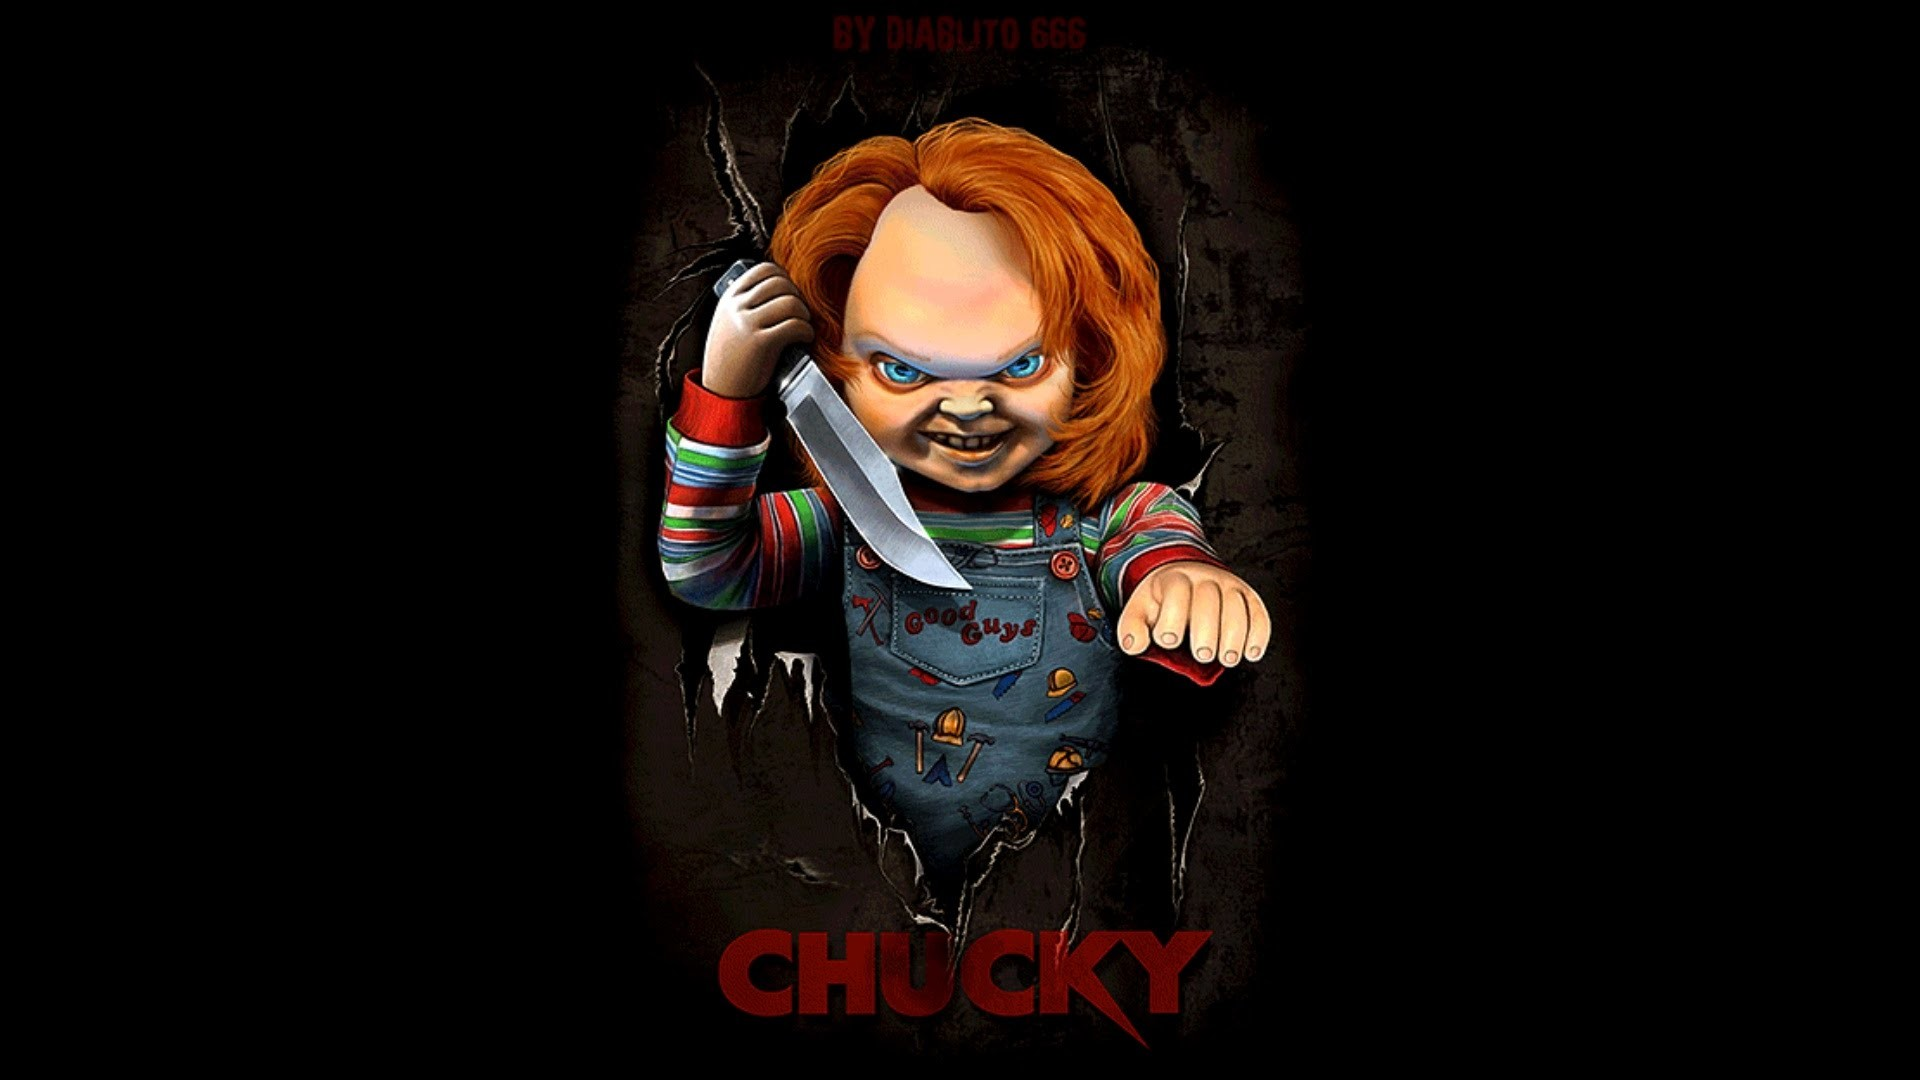 1920x1080 CHUCKY 7 NEWS! (Filming Location, Possibly Higher Budget & More) - YouTube